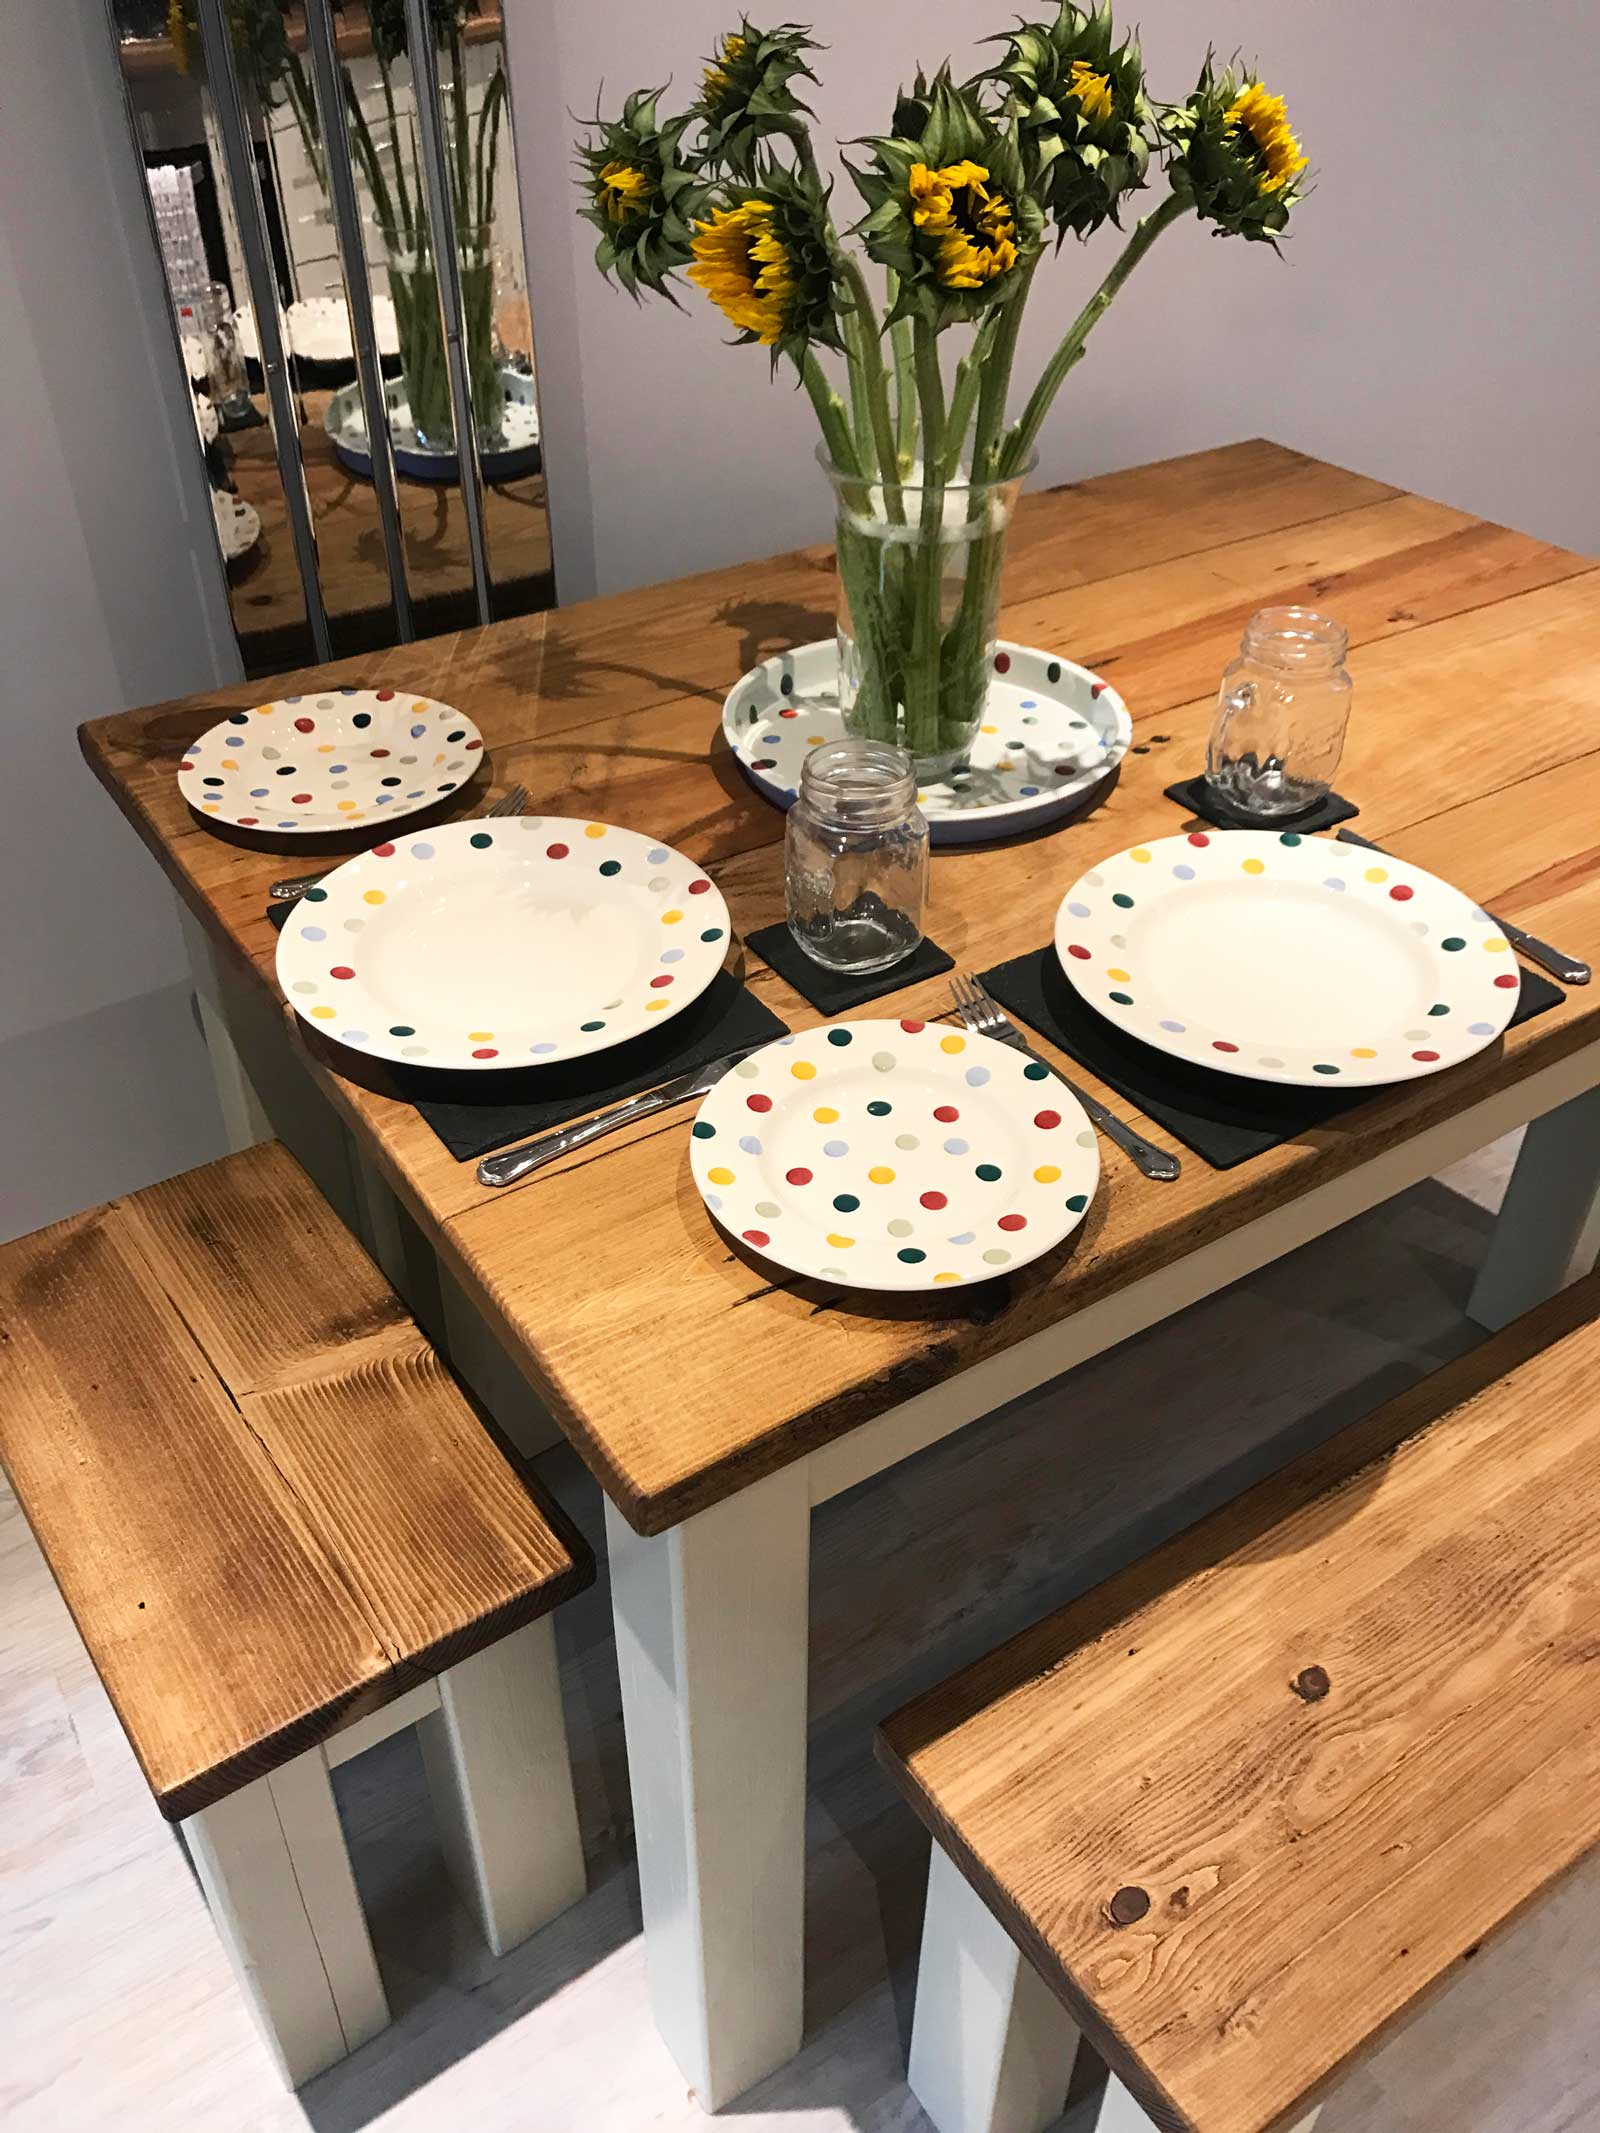 Dining table details: love the modern country look? Check out Kate's home tour on www.lovetohome.co.uk